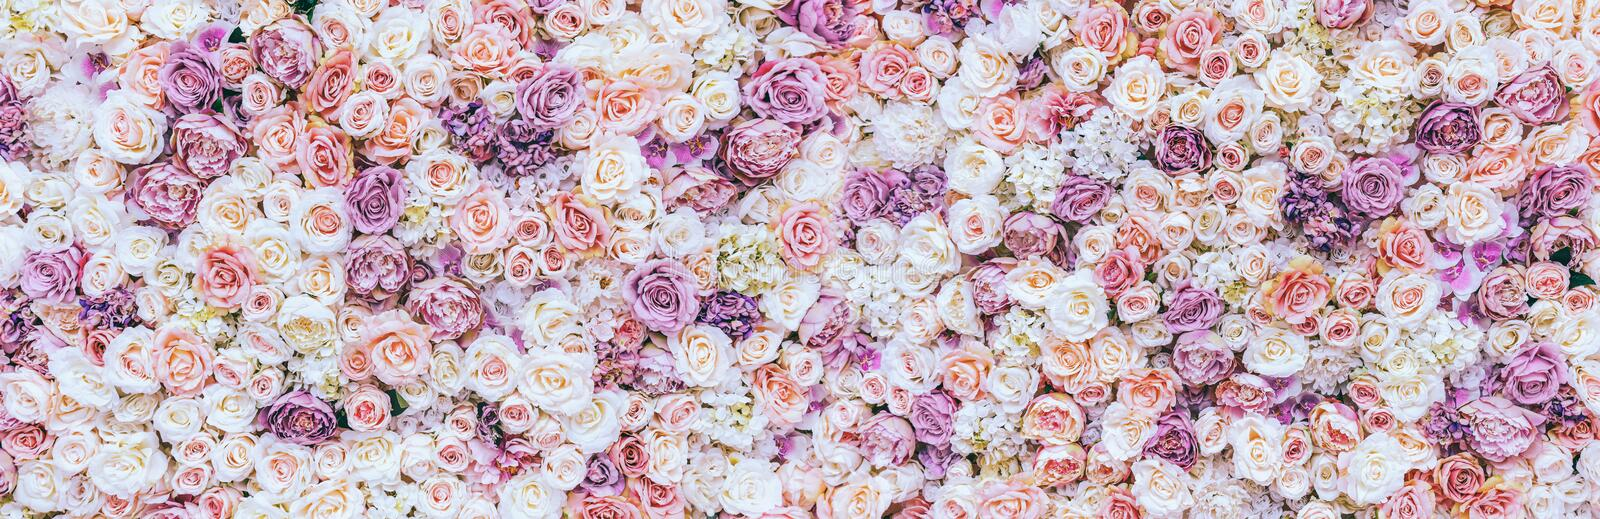 Flowers wall background with amazing red and white roses, Wedding decoration, hand made. Toning stock photos